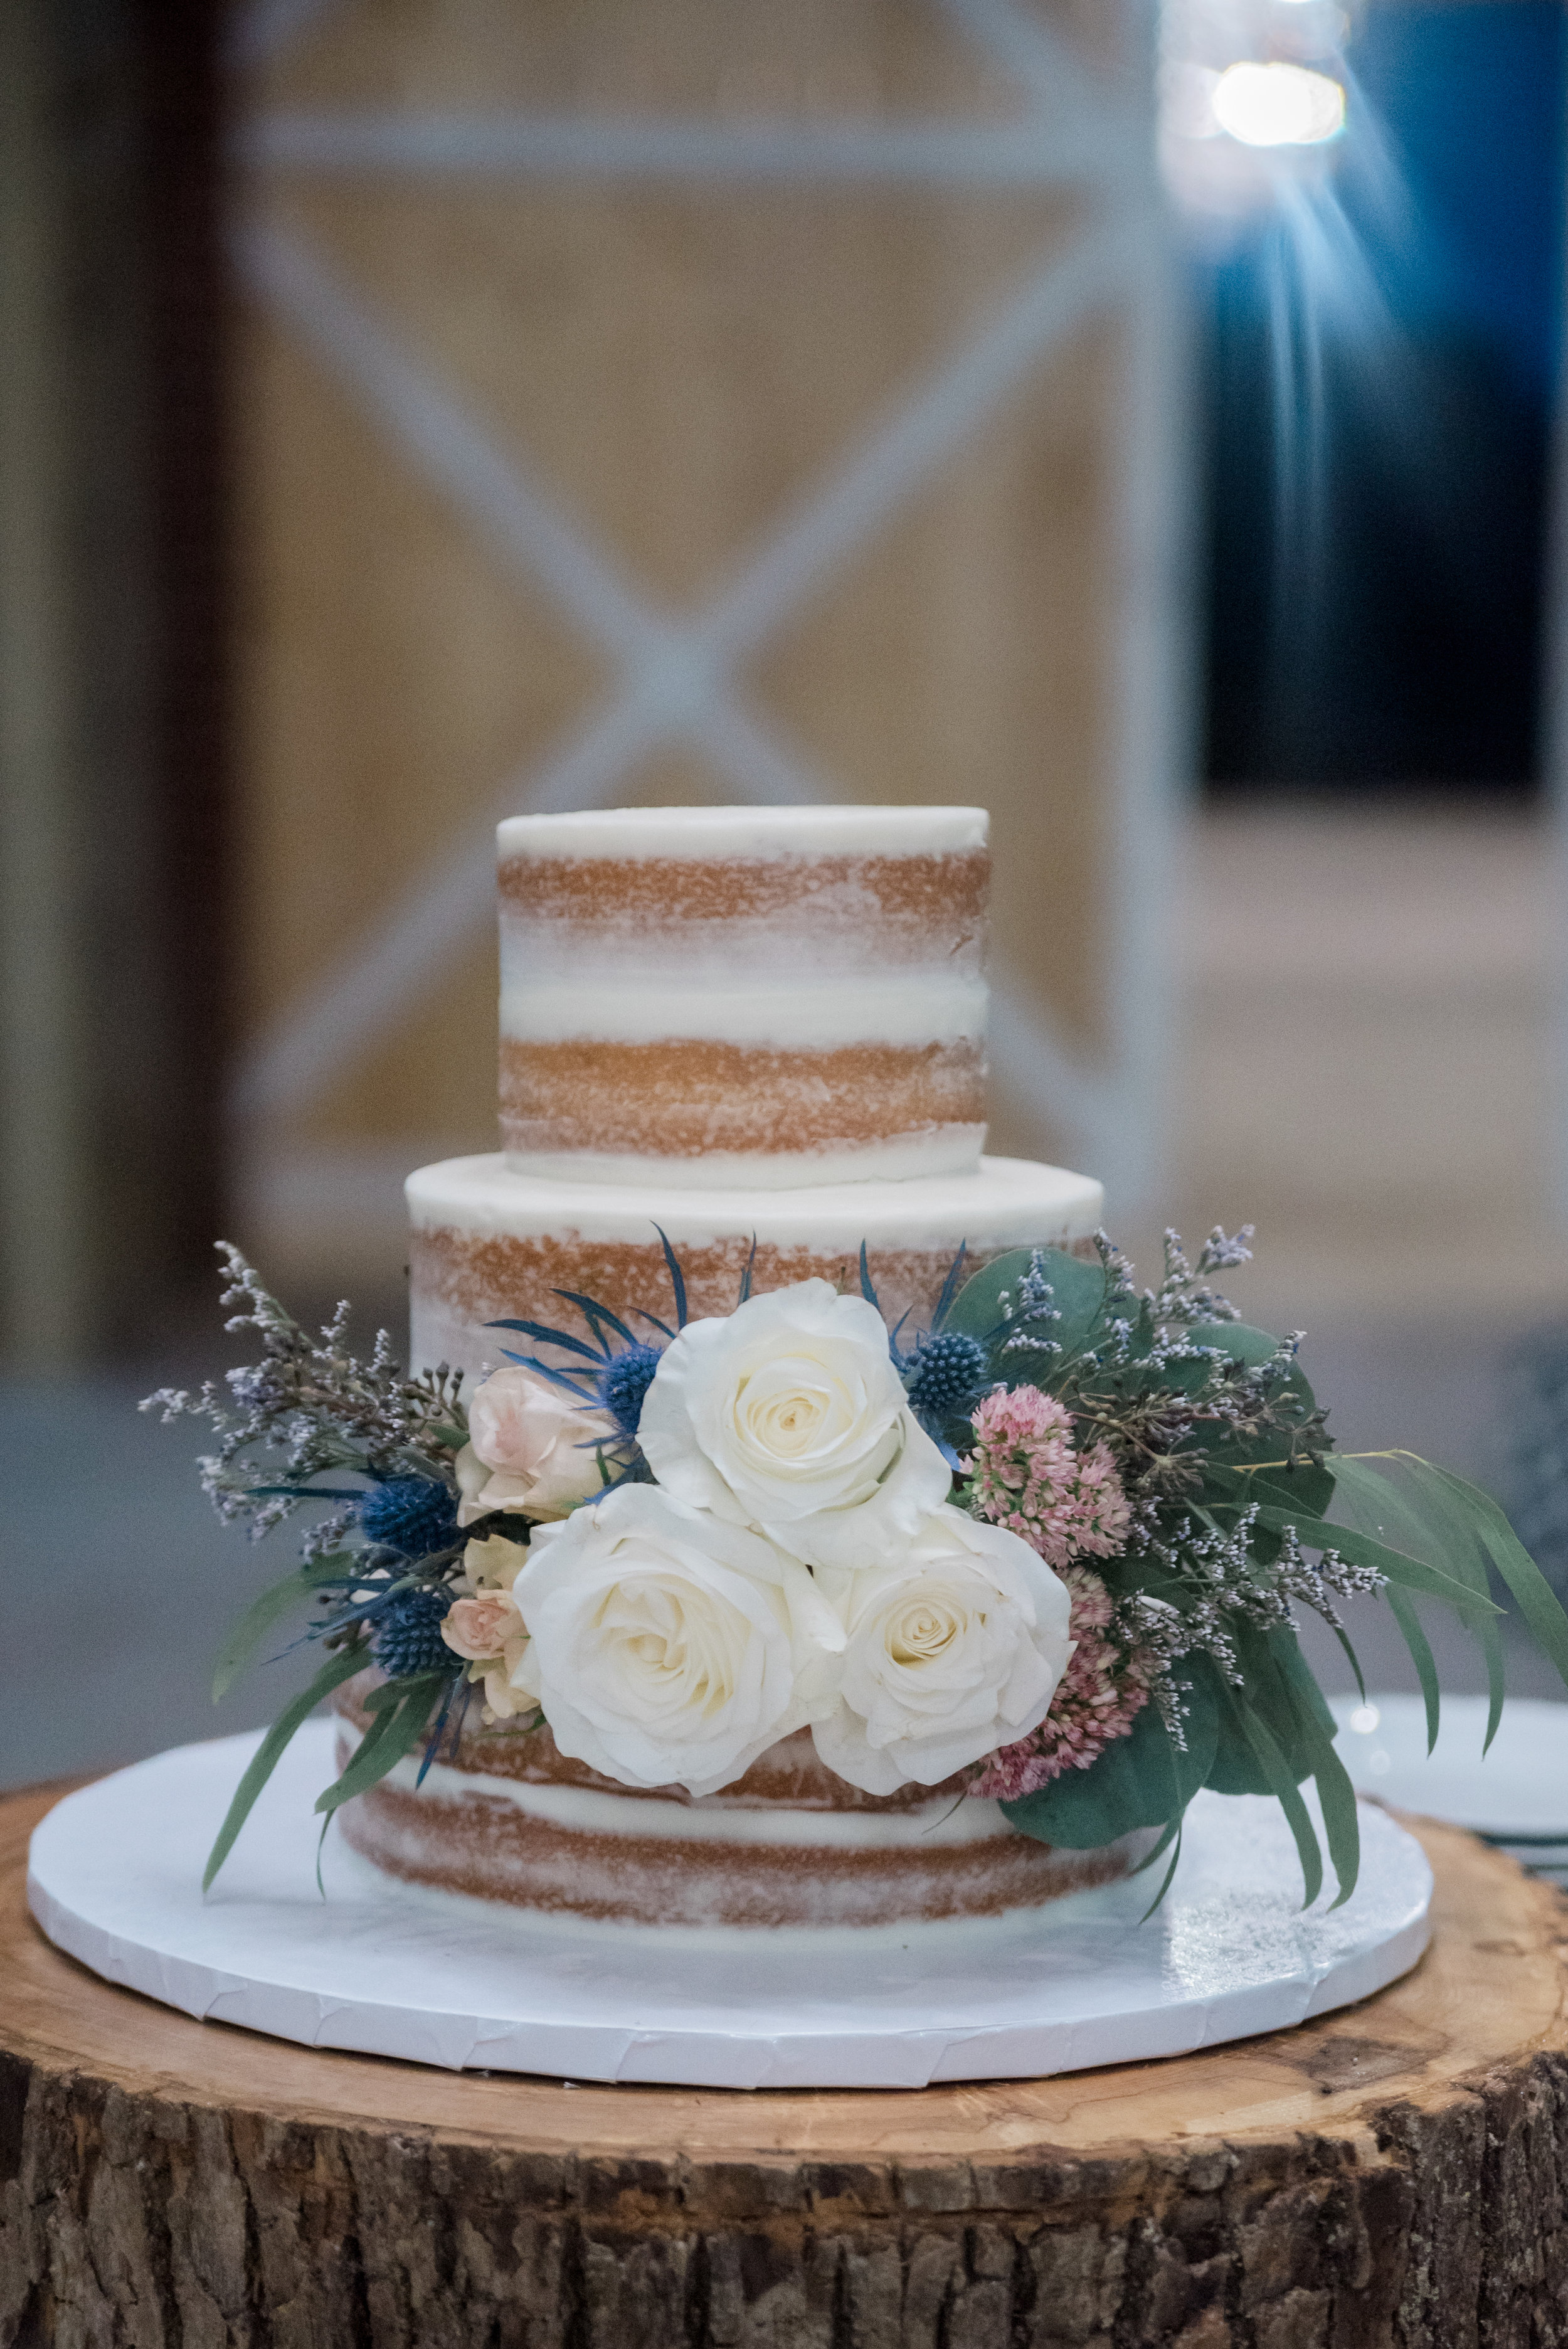 This scrumptious naked cake was provided by Columbia Cupcake, I was lucky enough to take some of it home, I cannot say it lasted longer than 24 hours. My family and I dug into it the second I got home